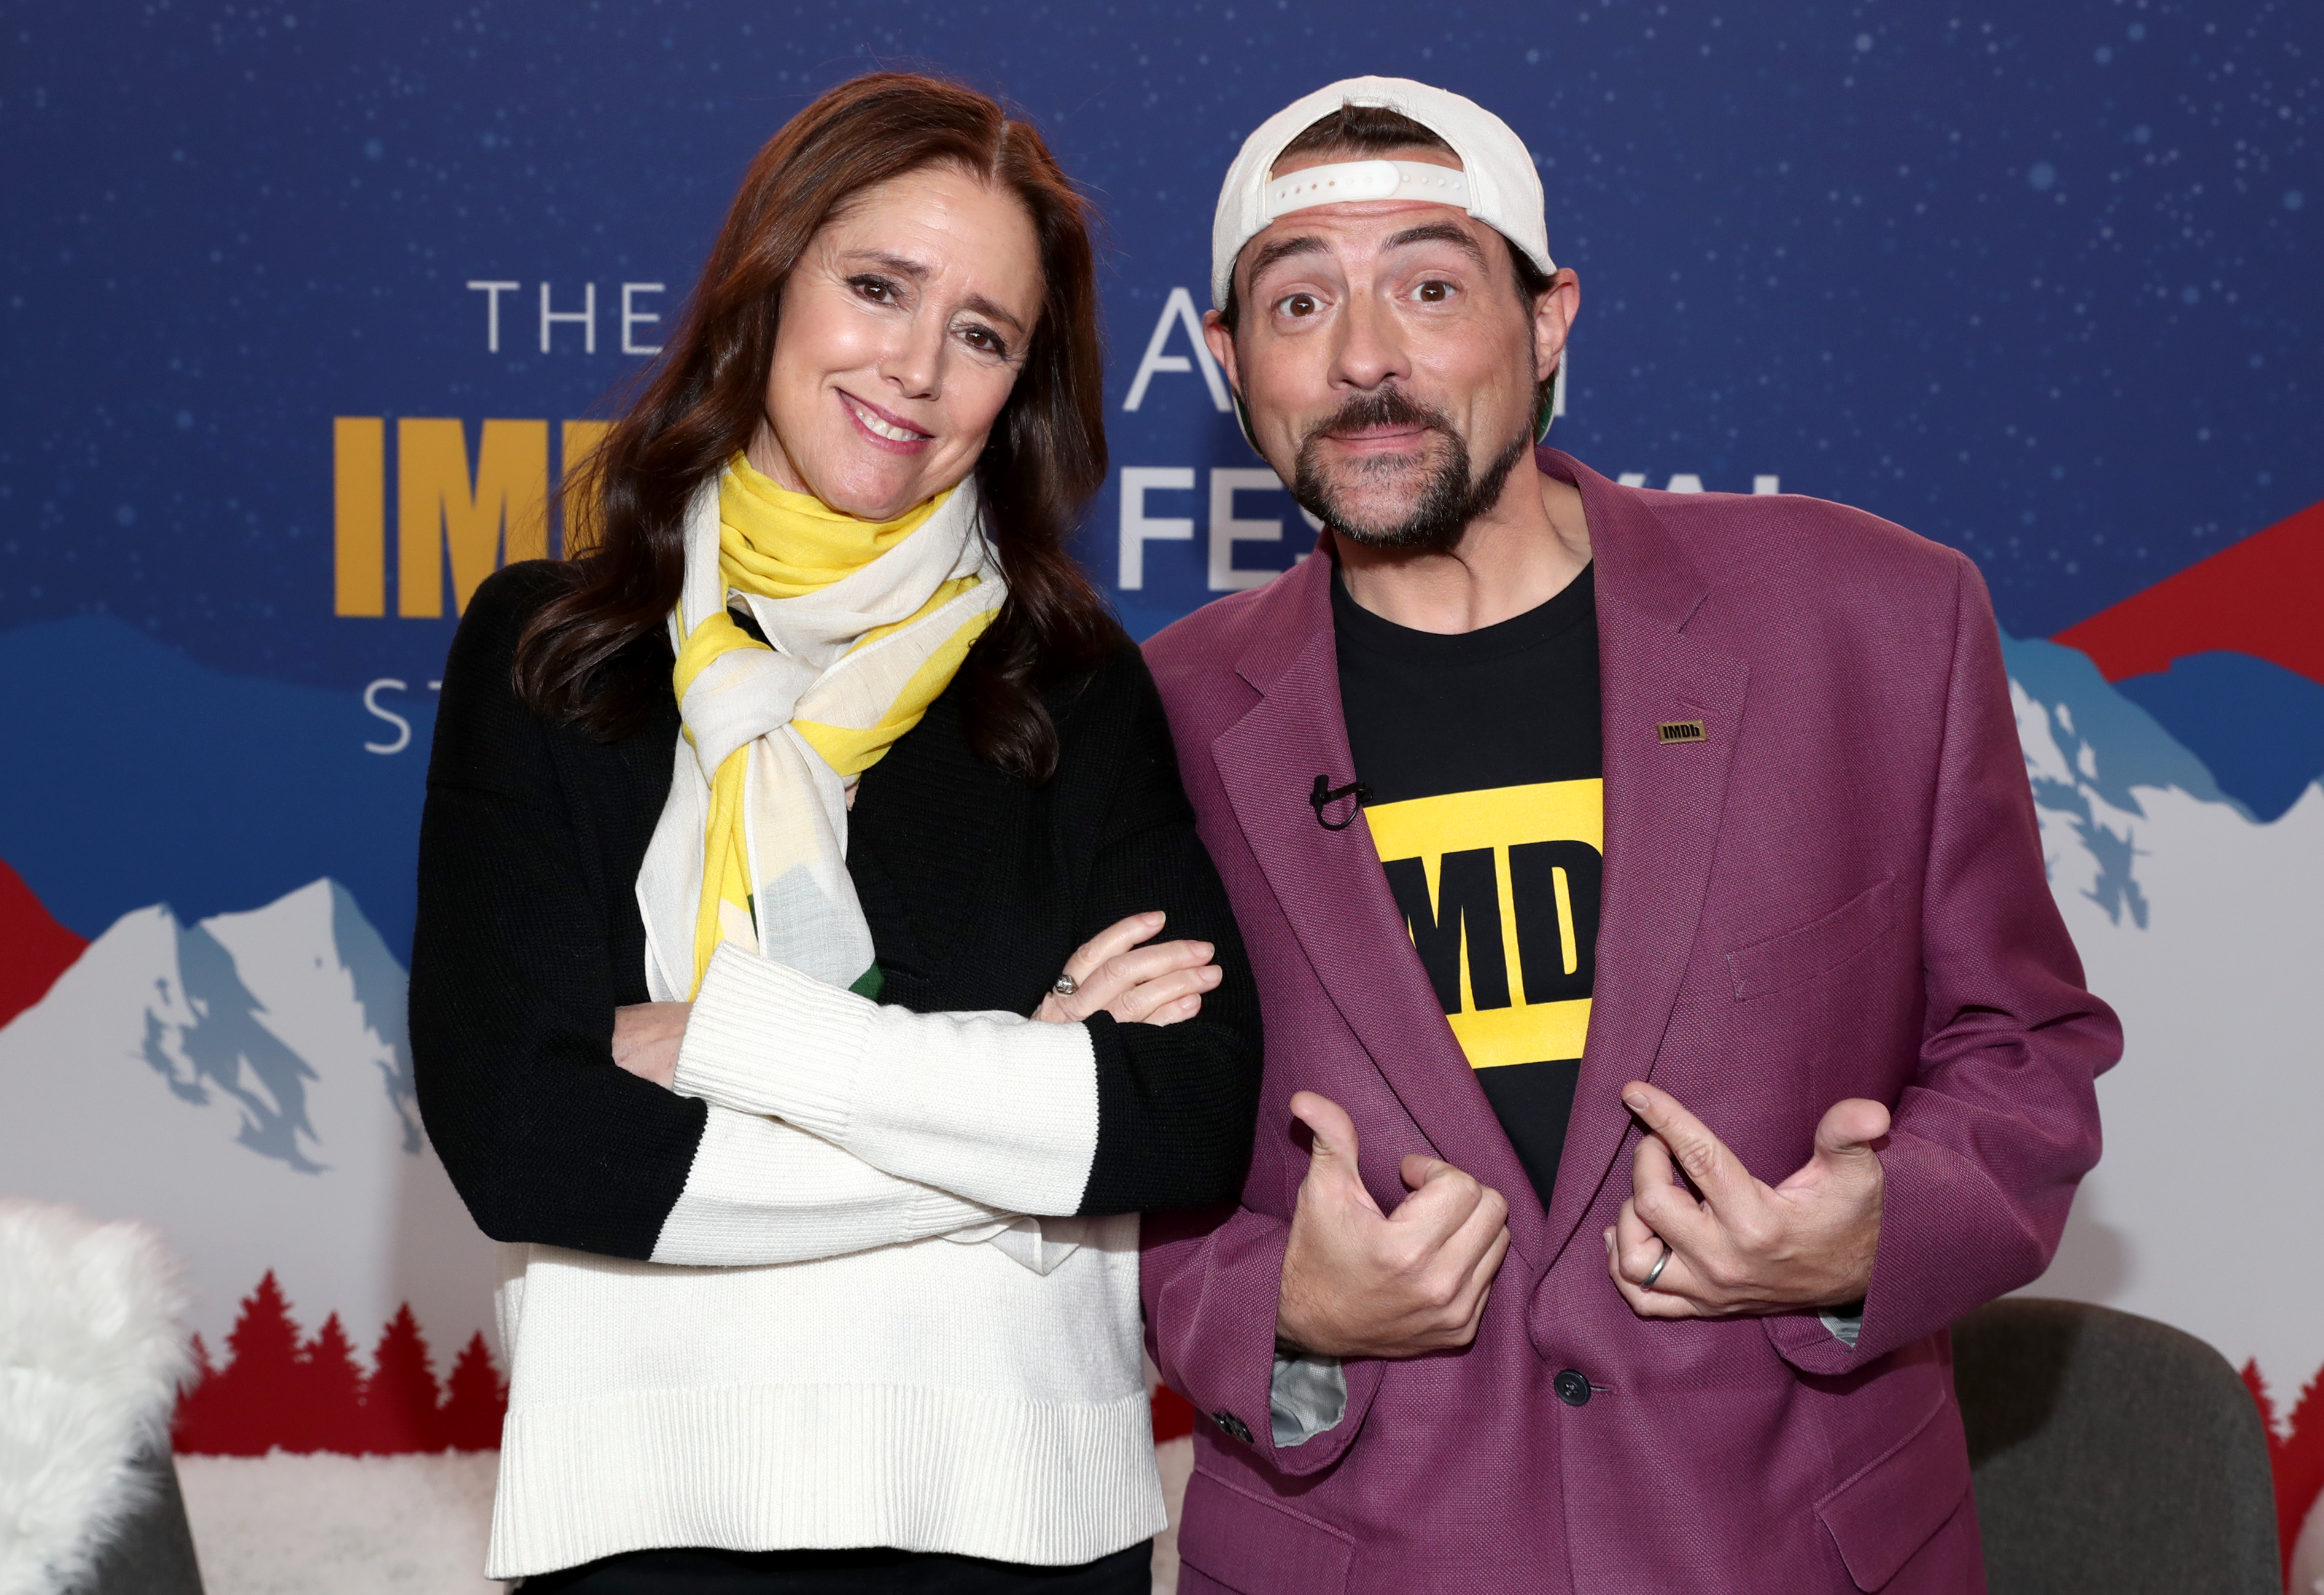 Kevin Smith and Julie Taymor at an event for The IMDb Studio at Acura Festival Village (2020)